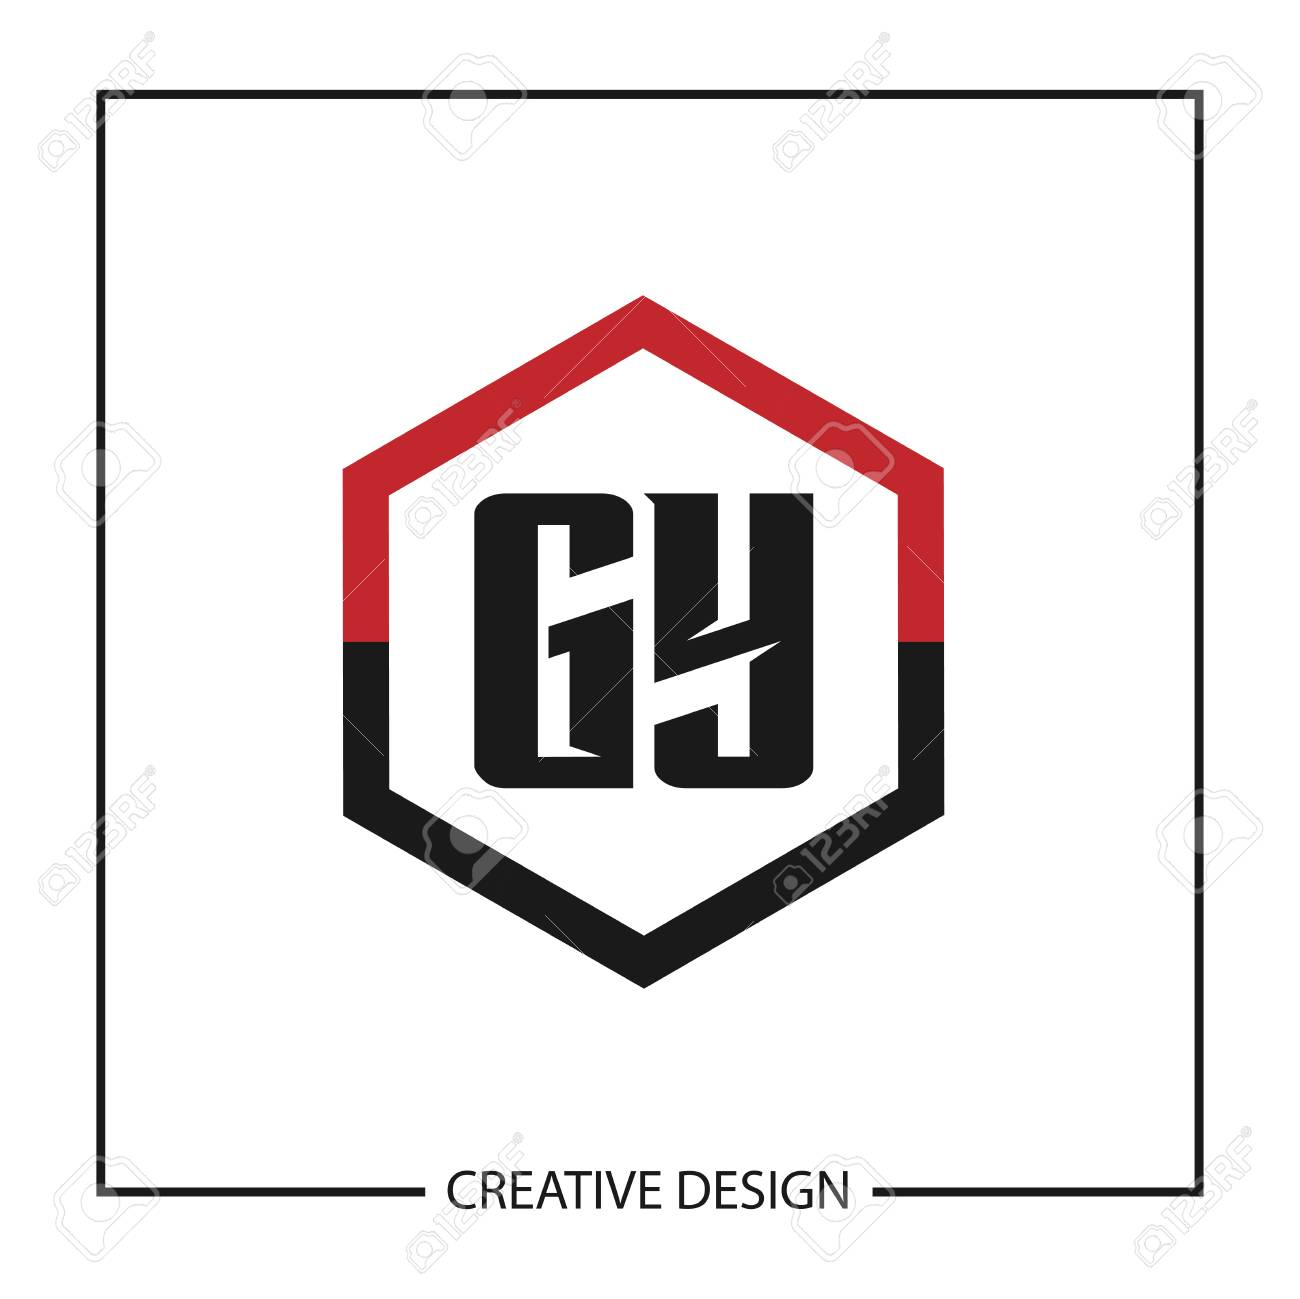 Initial Letter GY Template Design - 125246487